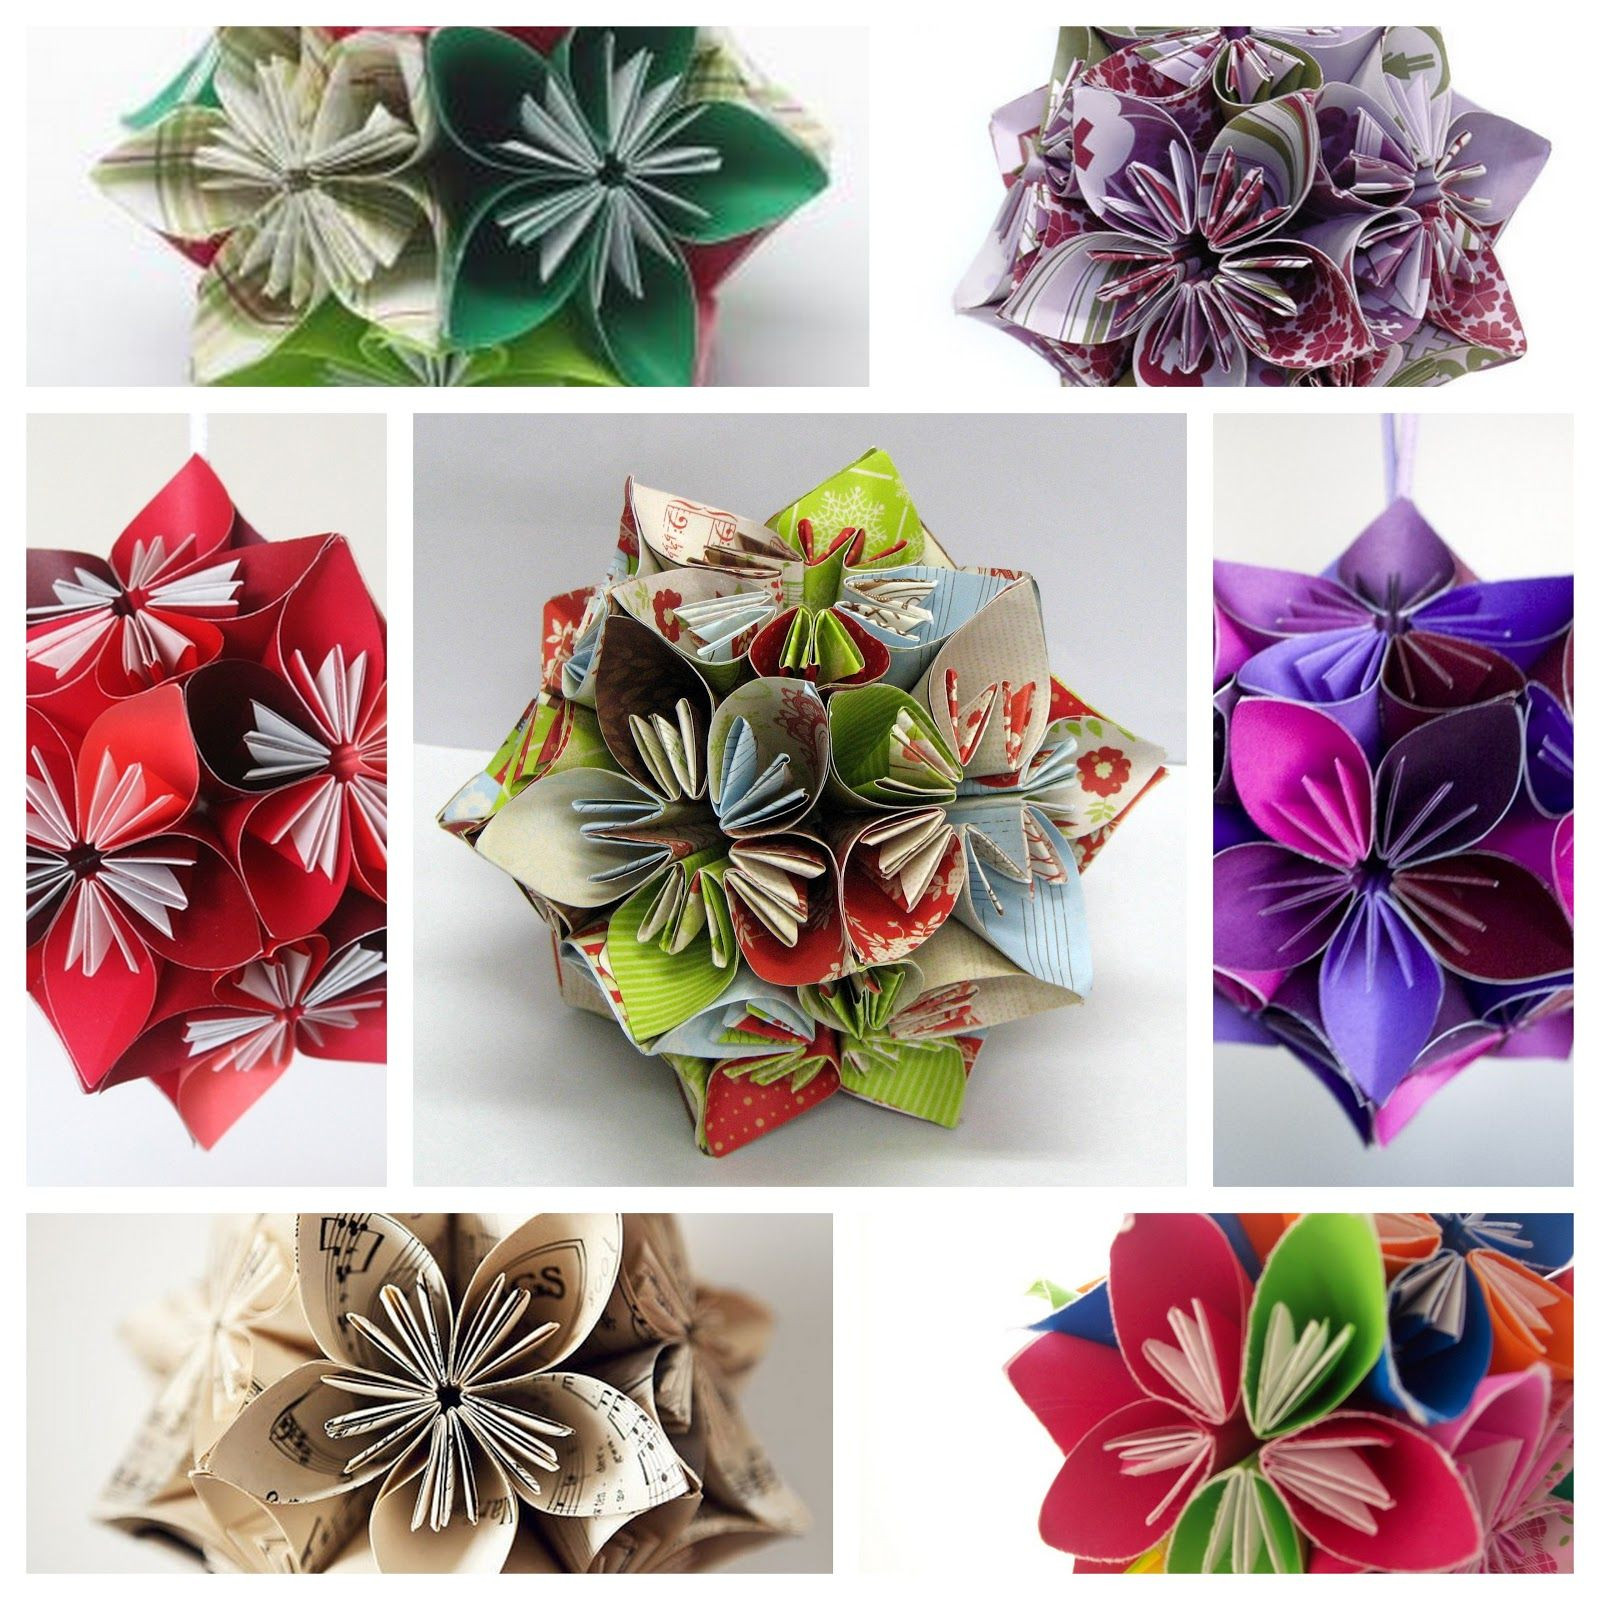 Best ideas about Cardboard Craft Ideas For Adults . Save or Pin Christmas Paper Crafts For Adults Now.